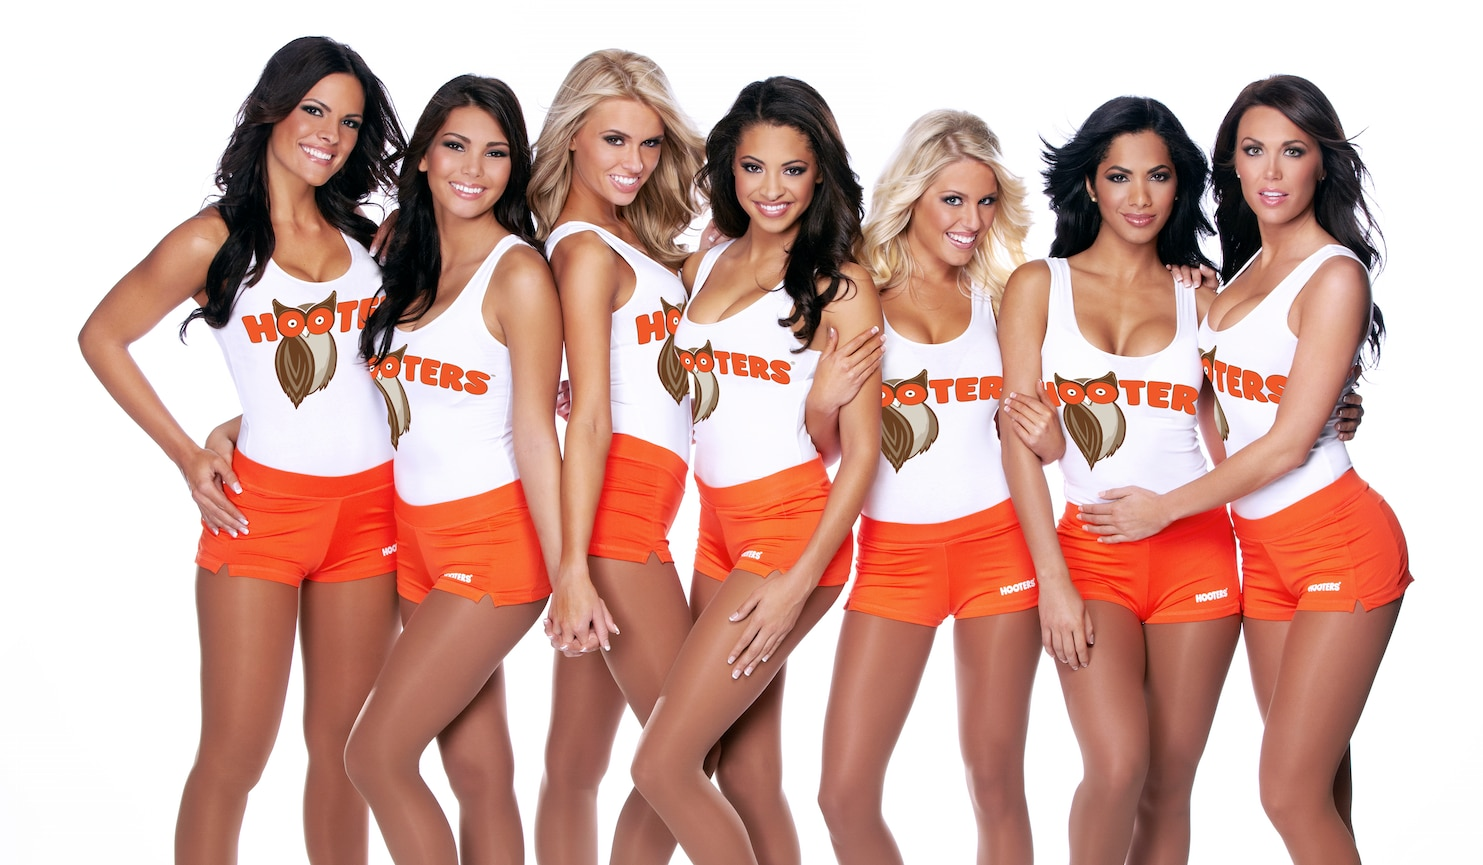 Why is this place called 'Hooters'? We have no idea.